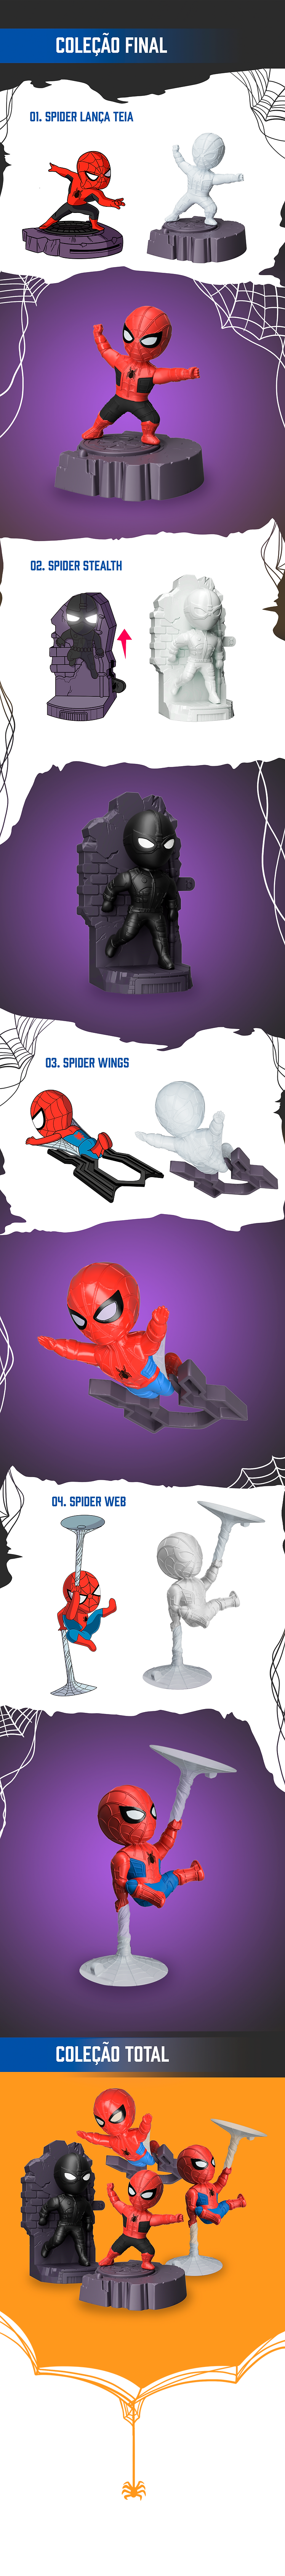 Behance---Spider---03.png